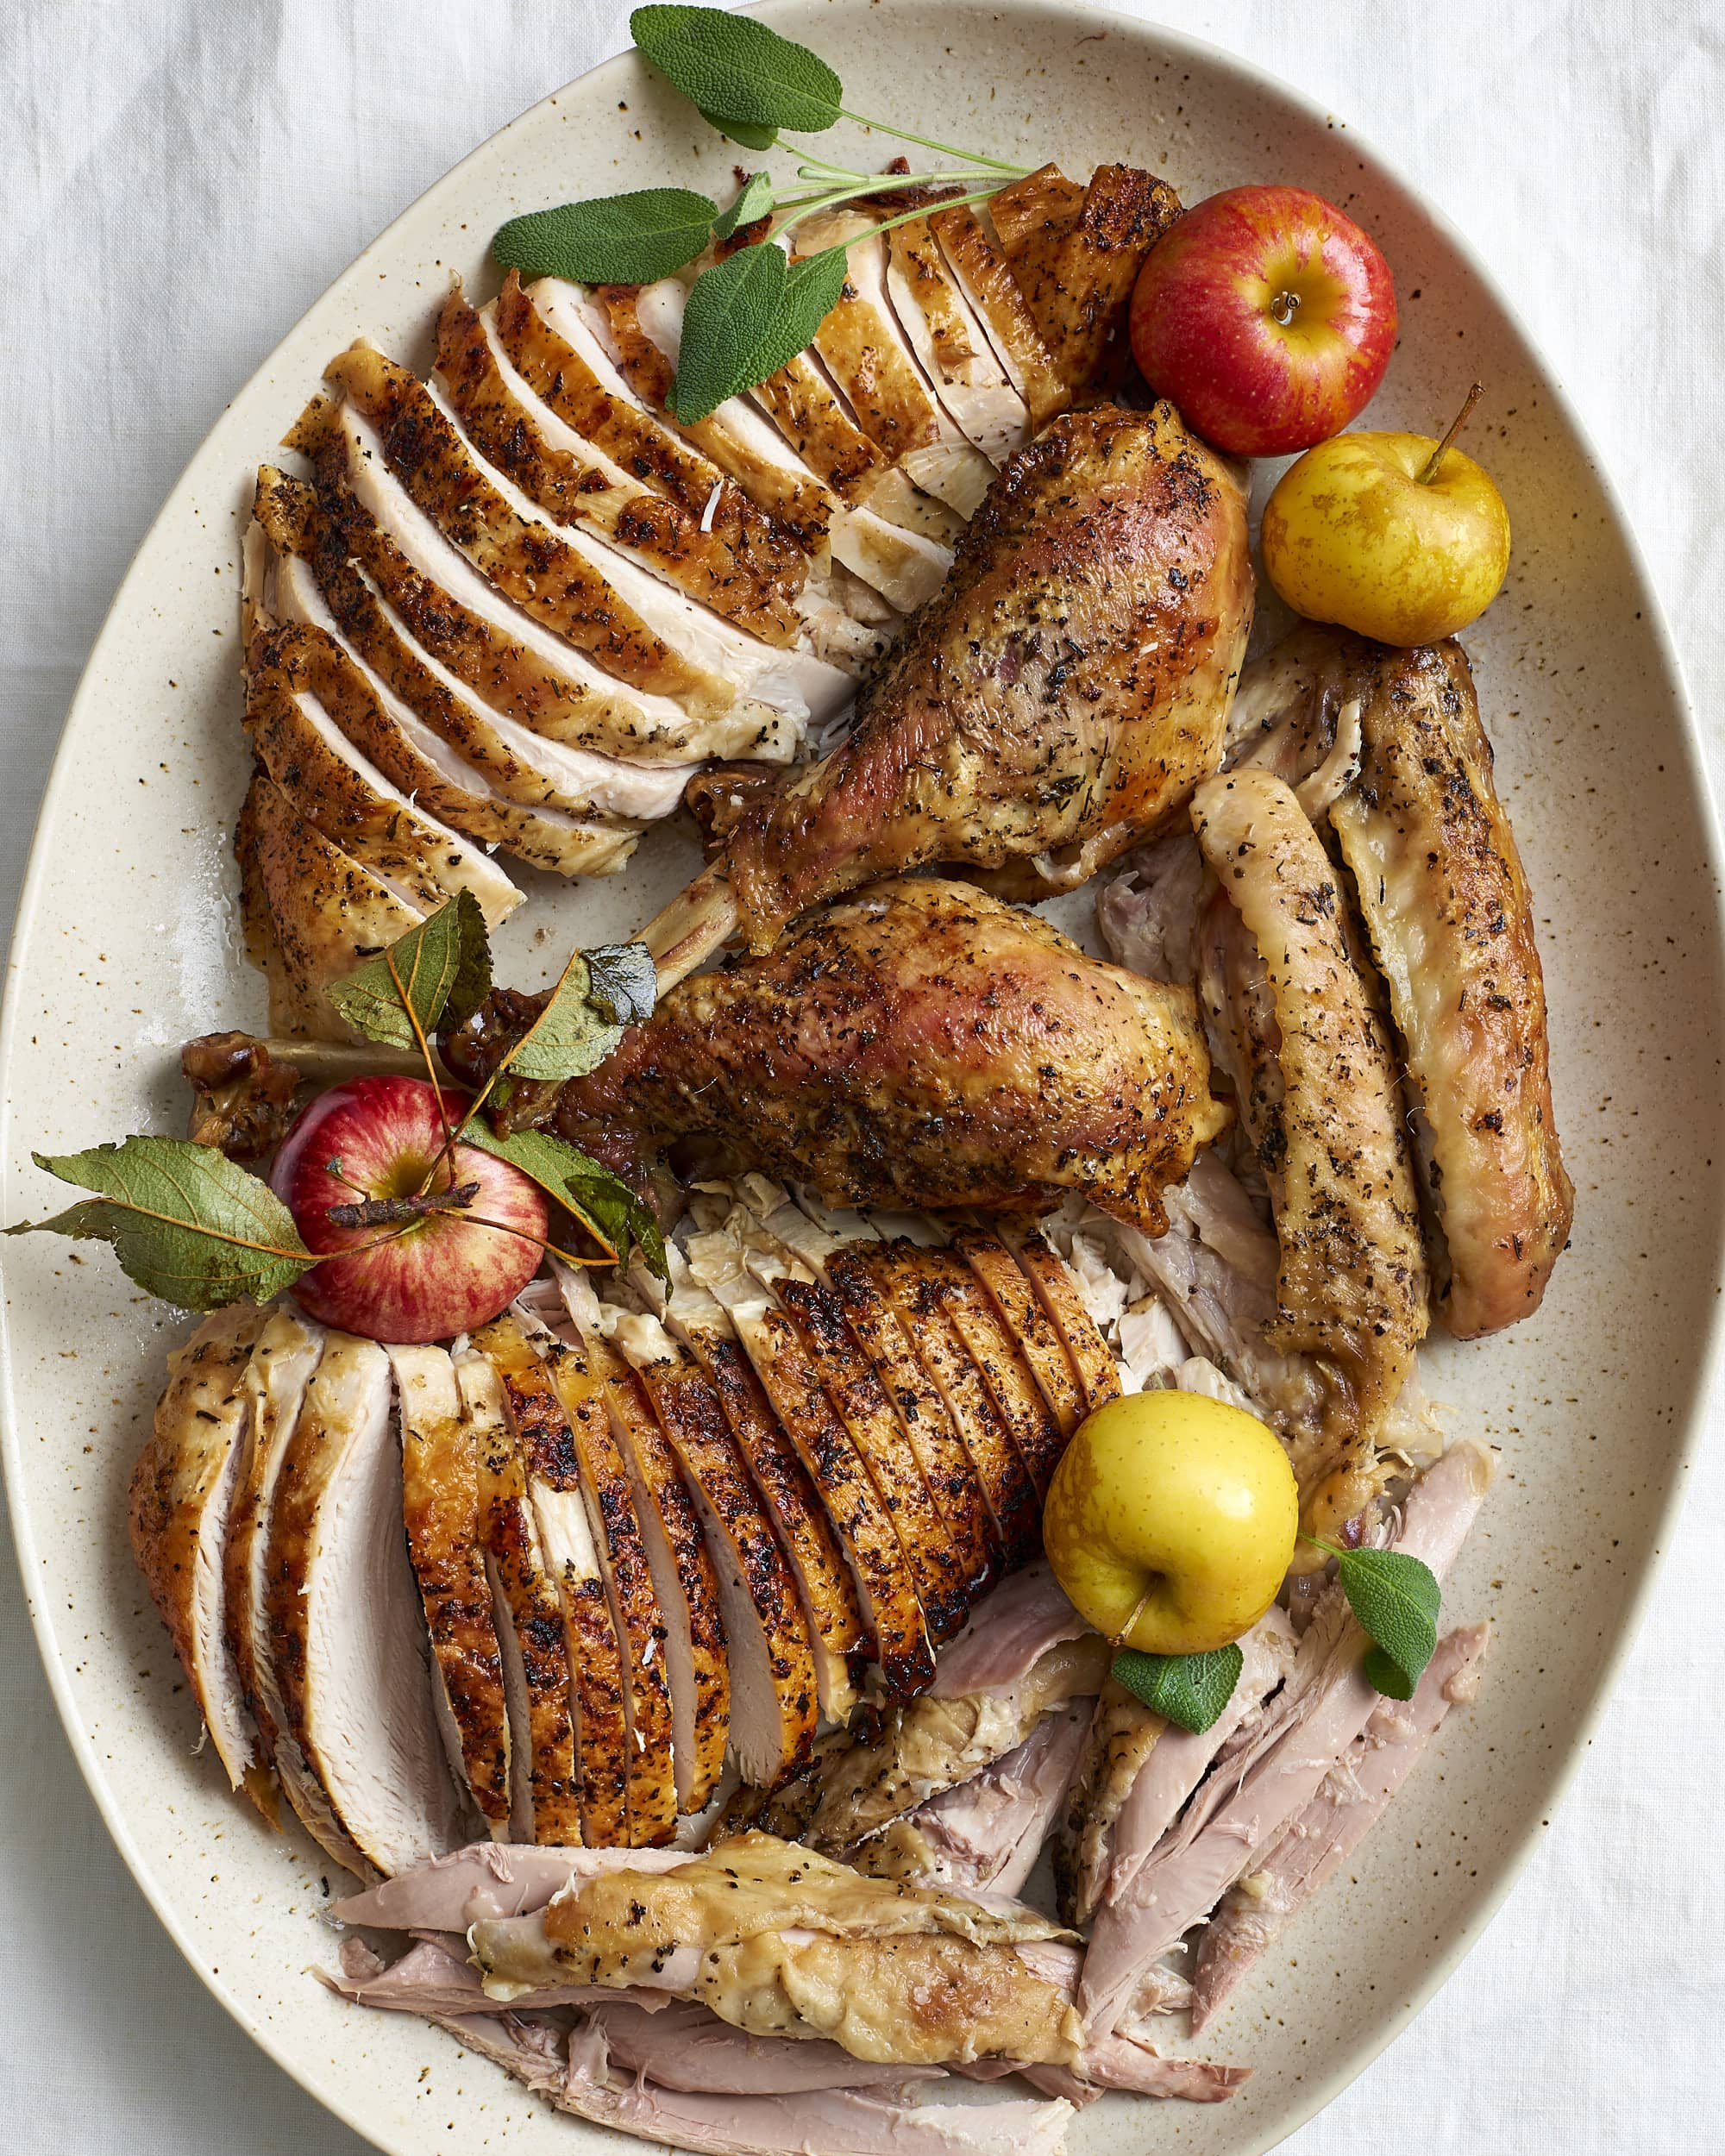 Turkey Carving Knife: How To Carve A Turkey: The Simplest, Easiest Method